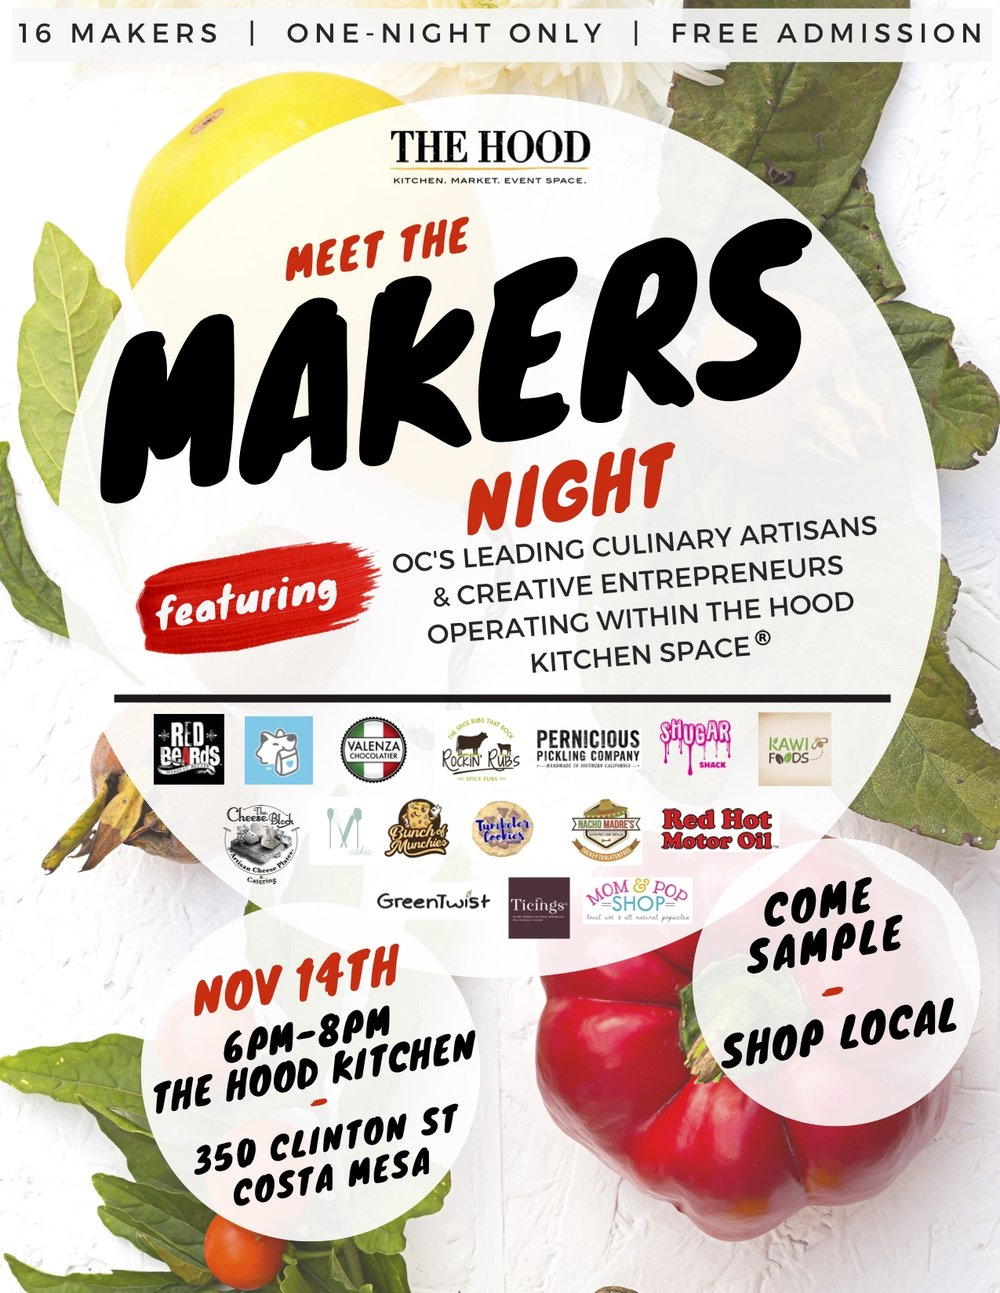 11-14 Meet The Makers Night at The Hood - LR Graphic .jpg